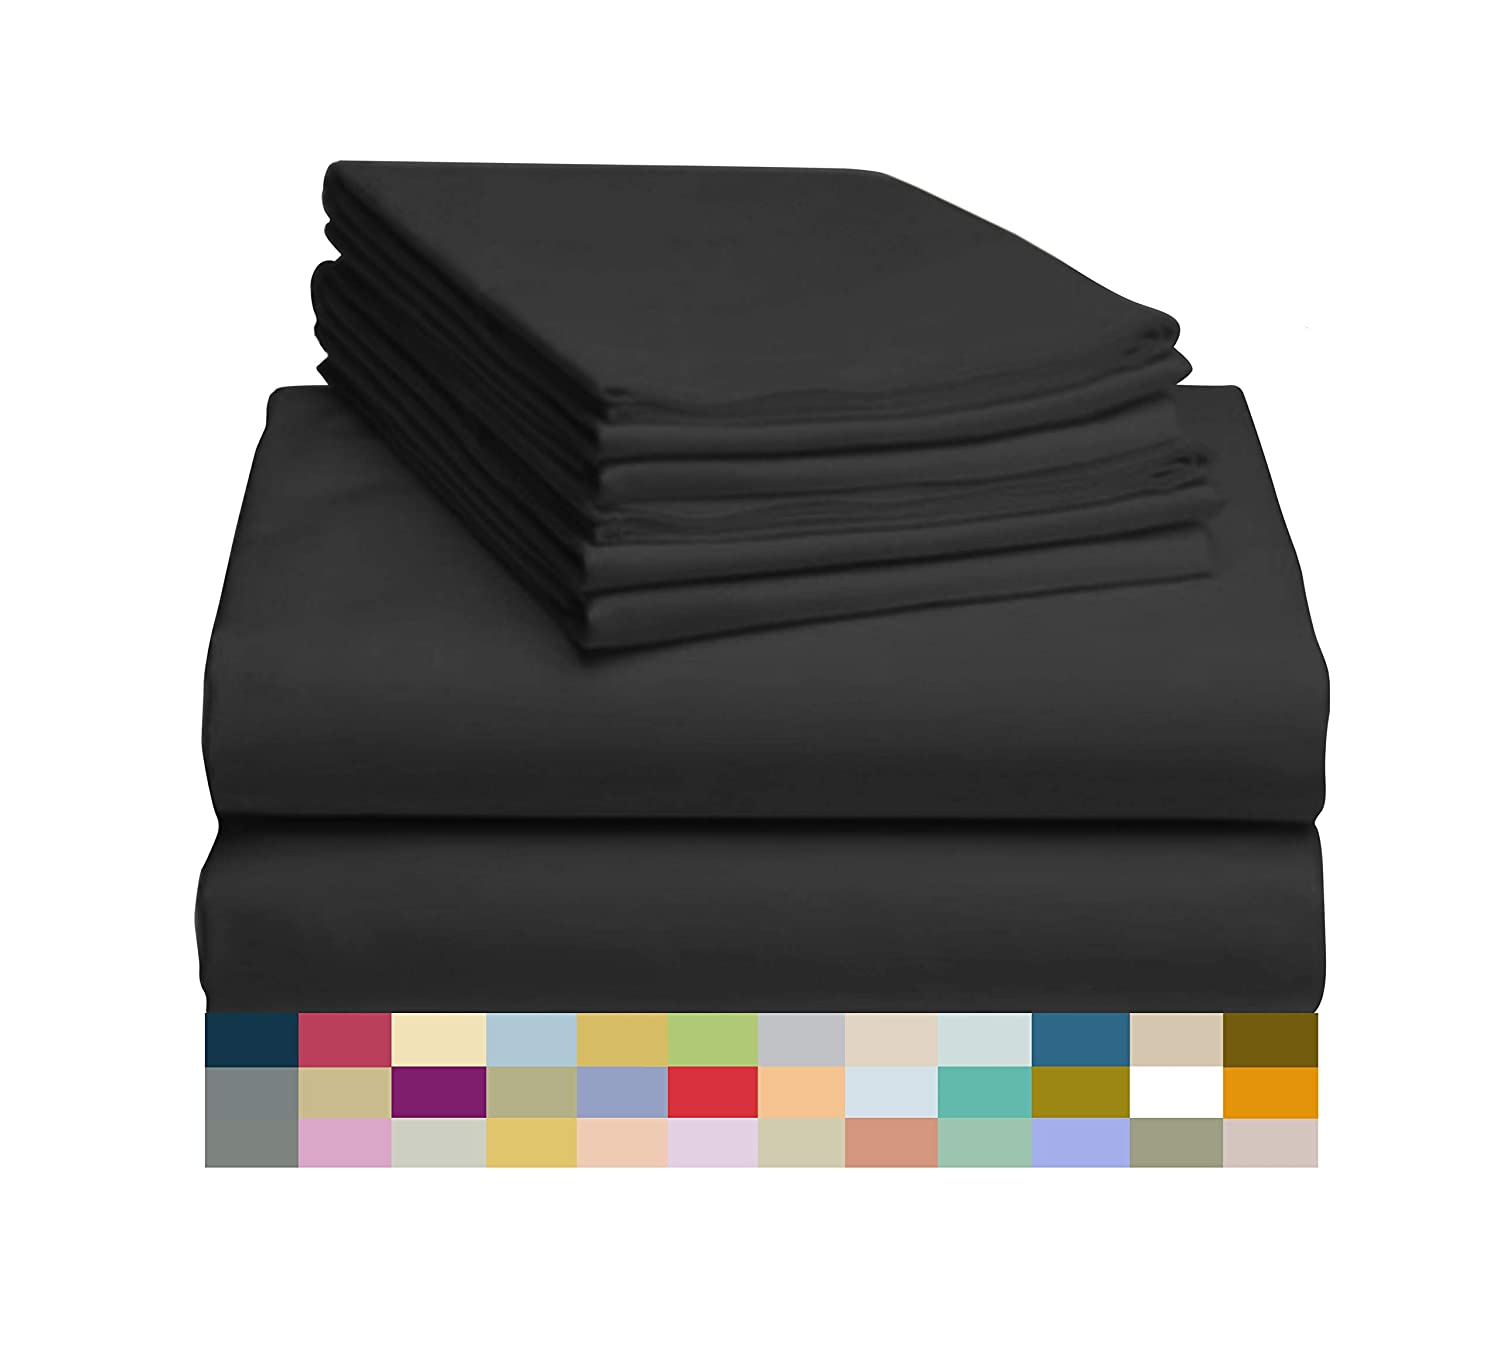 "LuxClub 6 PC Sheet Set Bamboo Sheets Deep Pockets 18"" Eco Friendly Wrinkle Free Sheets Hypoallergenic Anti-Bacteria Machine Washable Hotel Bedding Silky Soft - Black Queen"